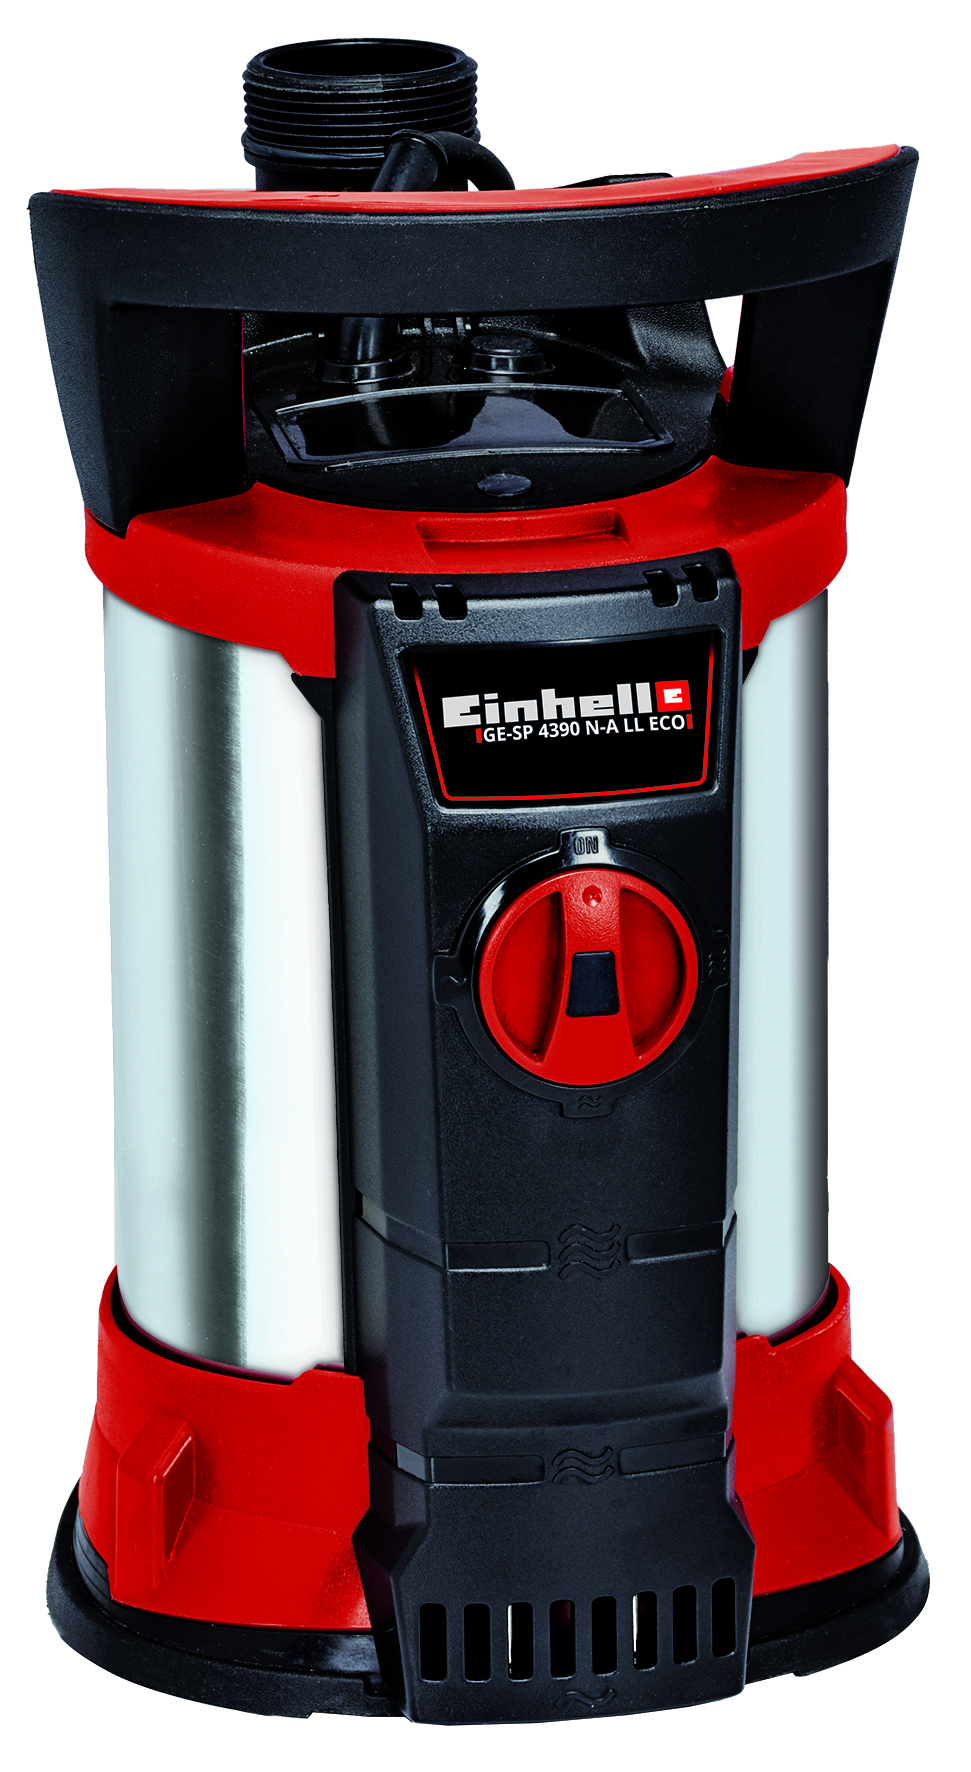 Uppopumppu Einhell Expert AquaSensor GE-SP 4390 N-A LL ECO puhtaalle vedelle